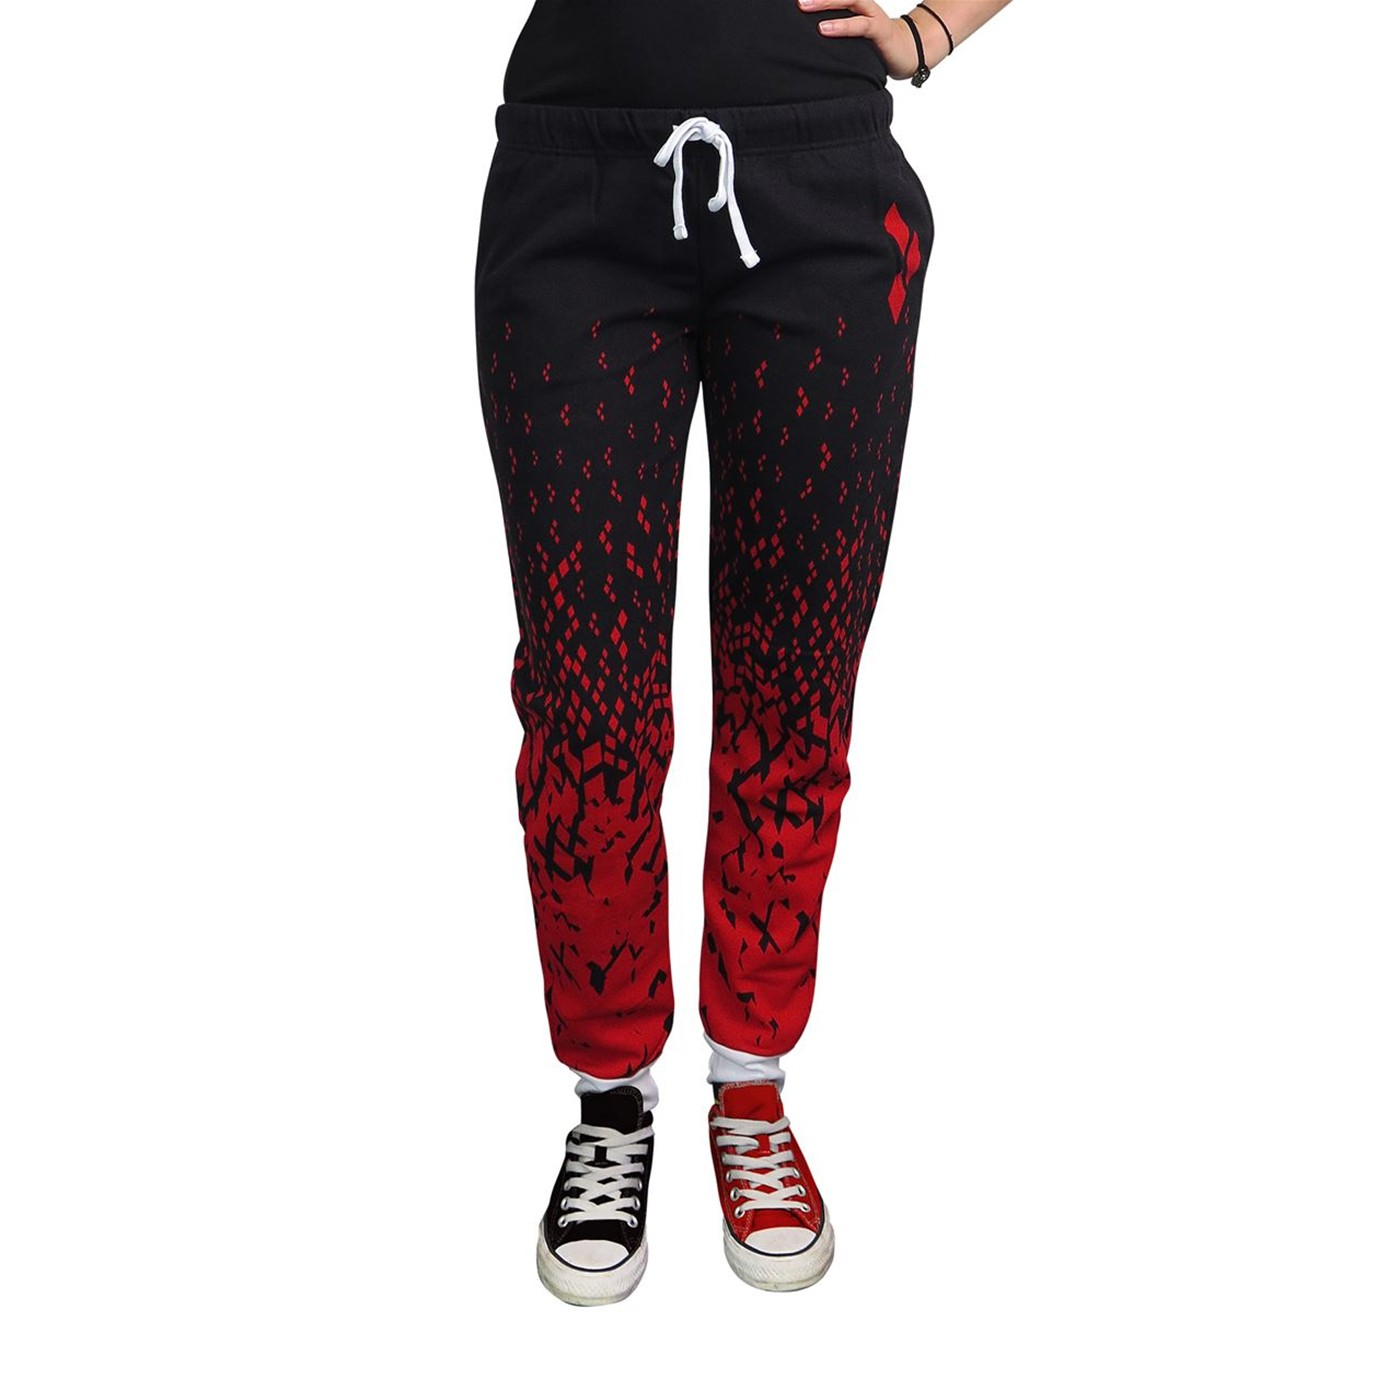 Harley Quinn Ombre Women's Jogging Pants